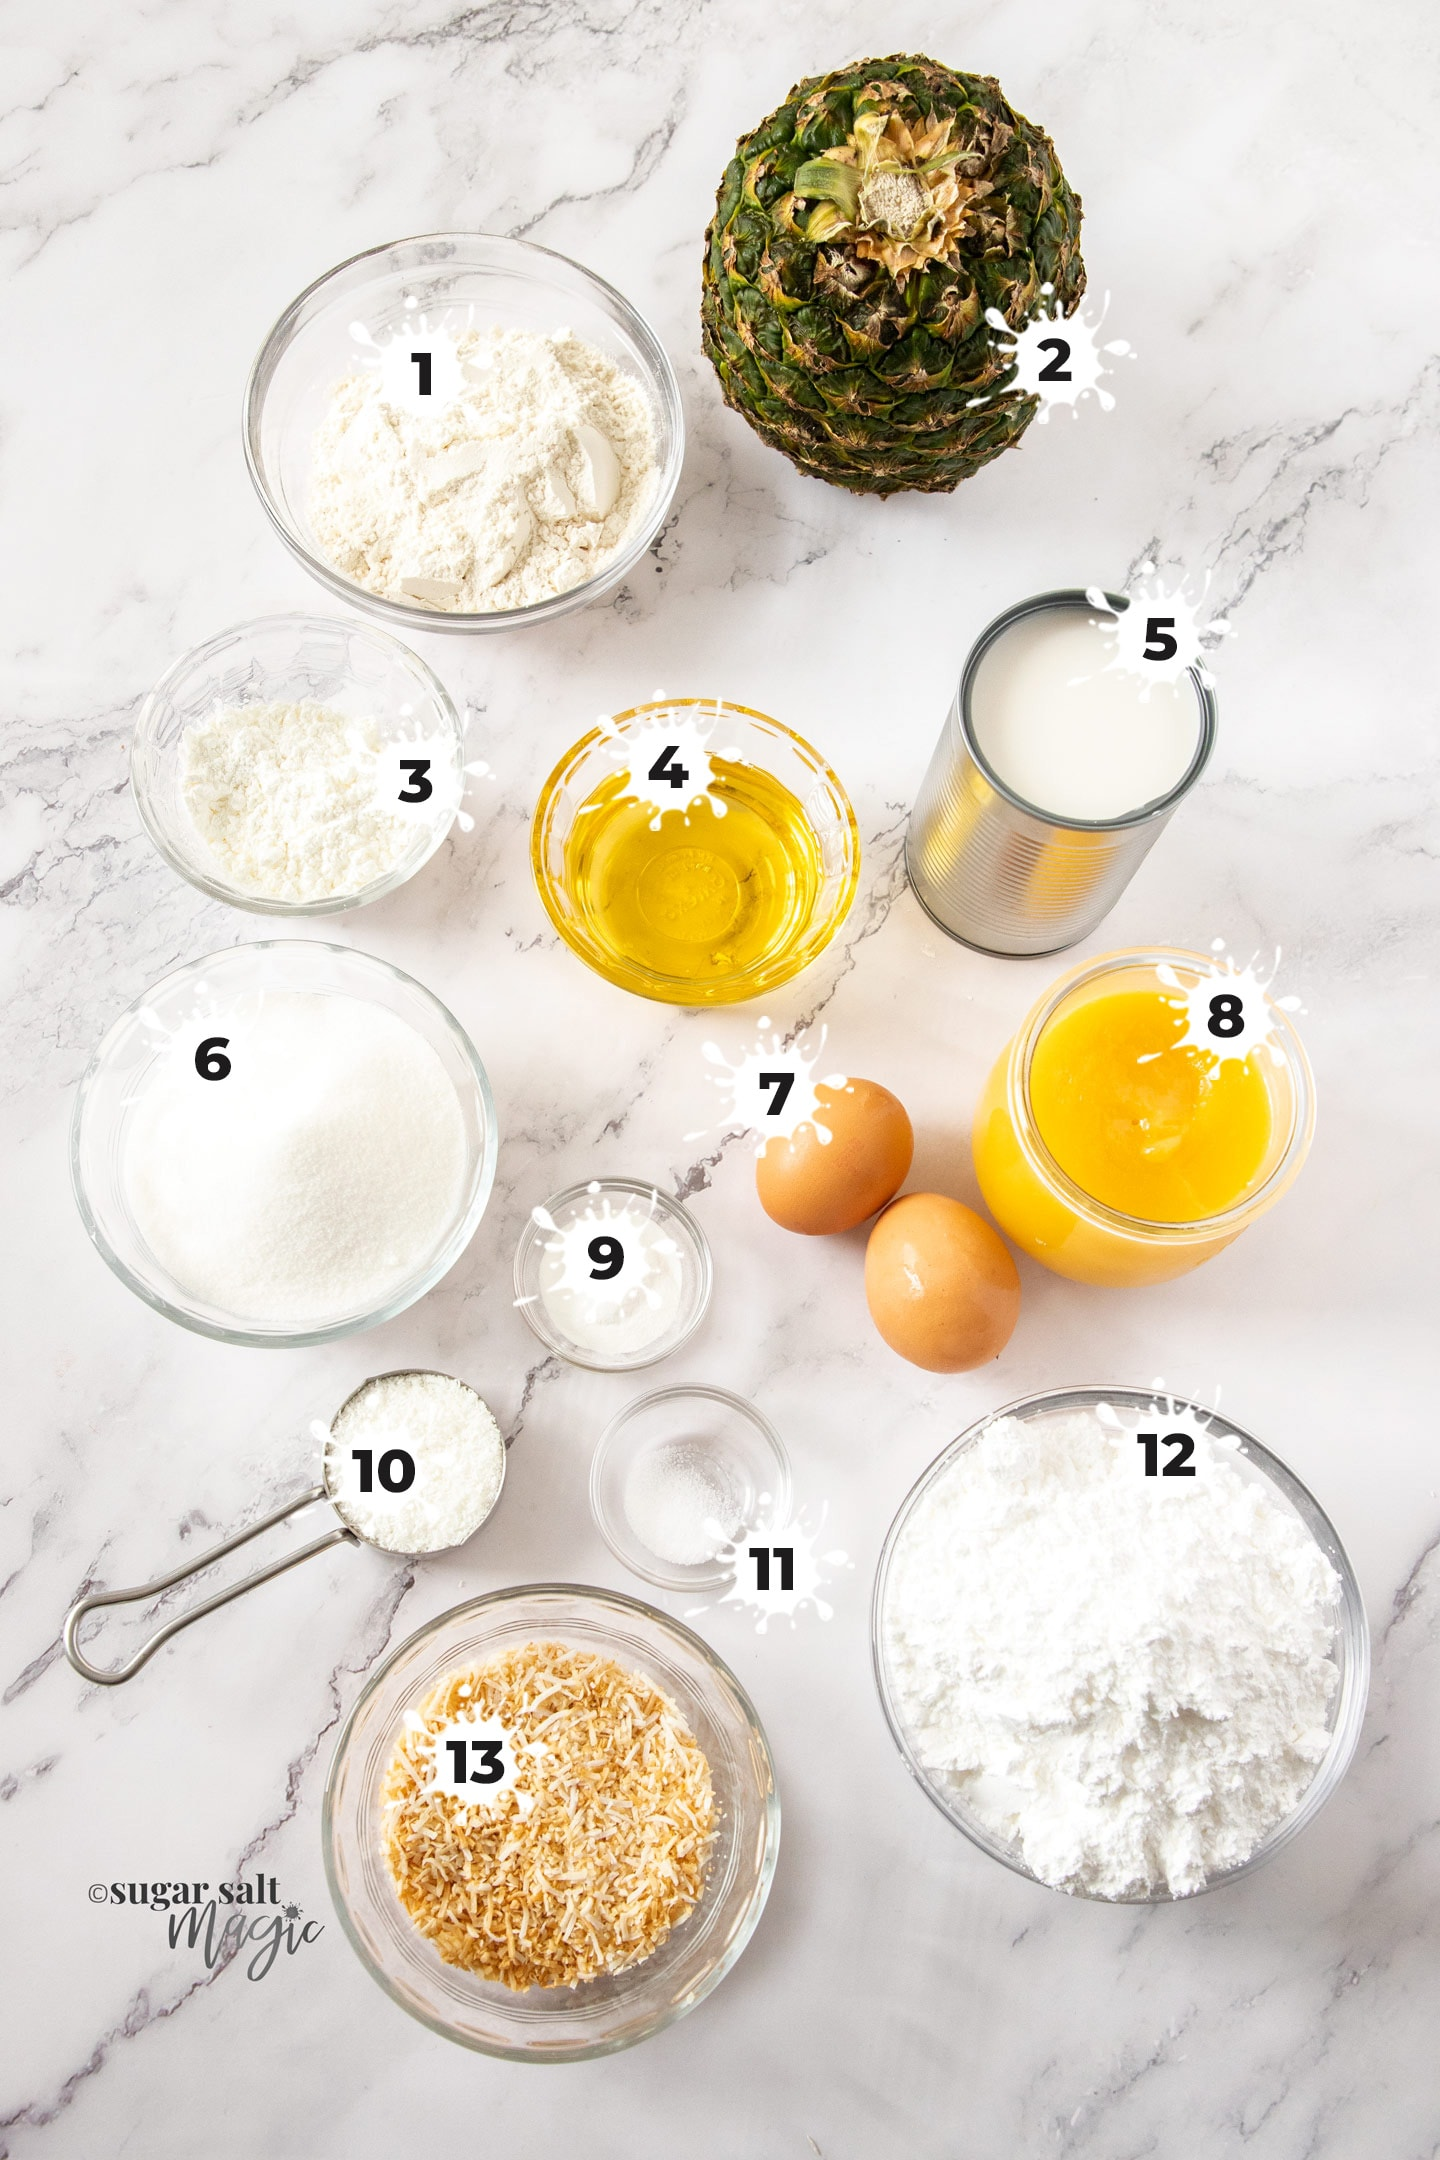 Ingredients for pineapple coconut cupcakes on a marble surface